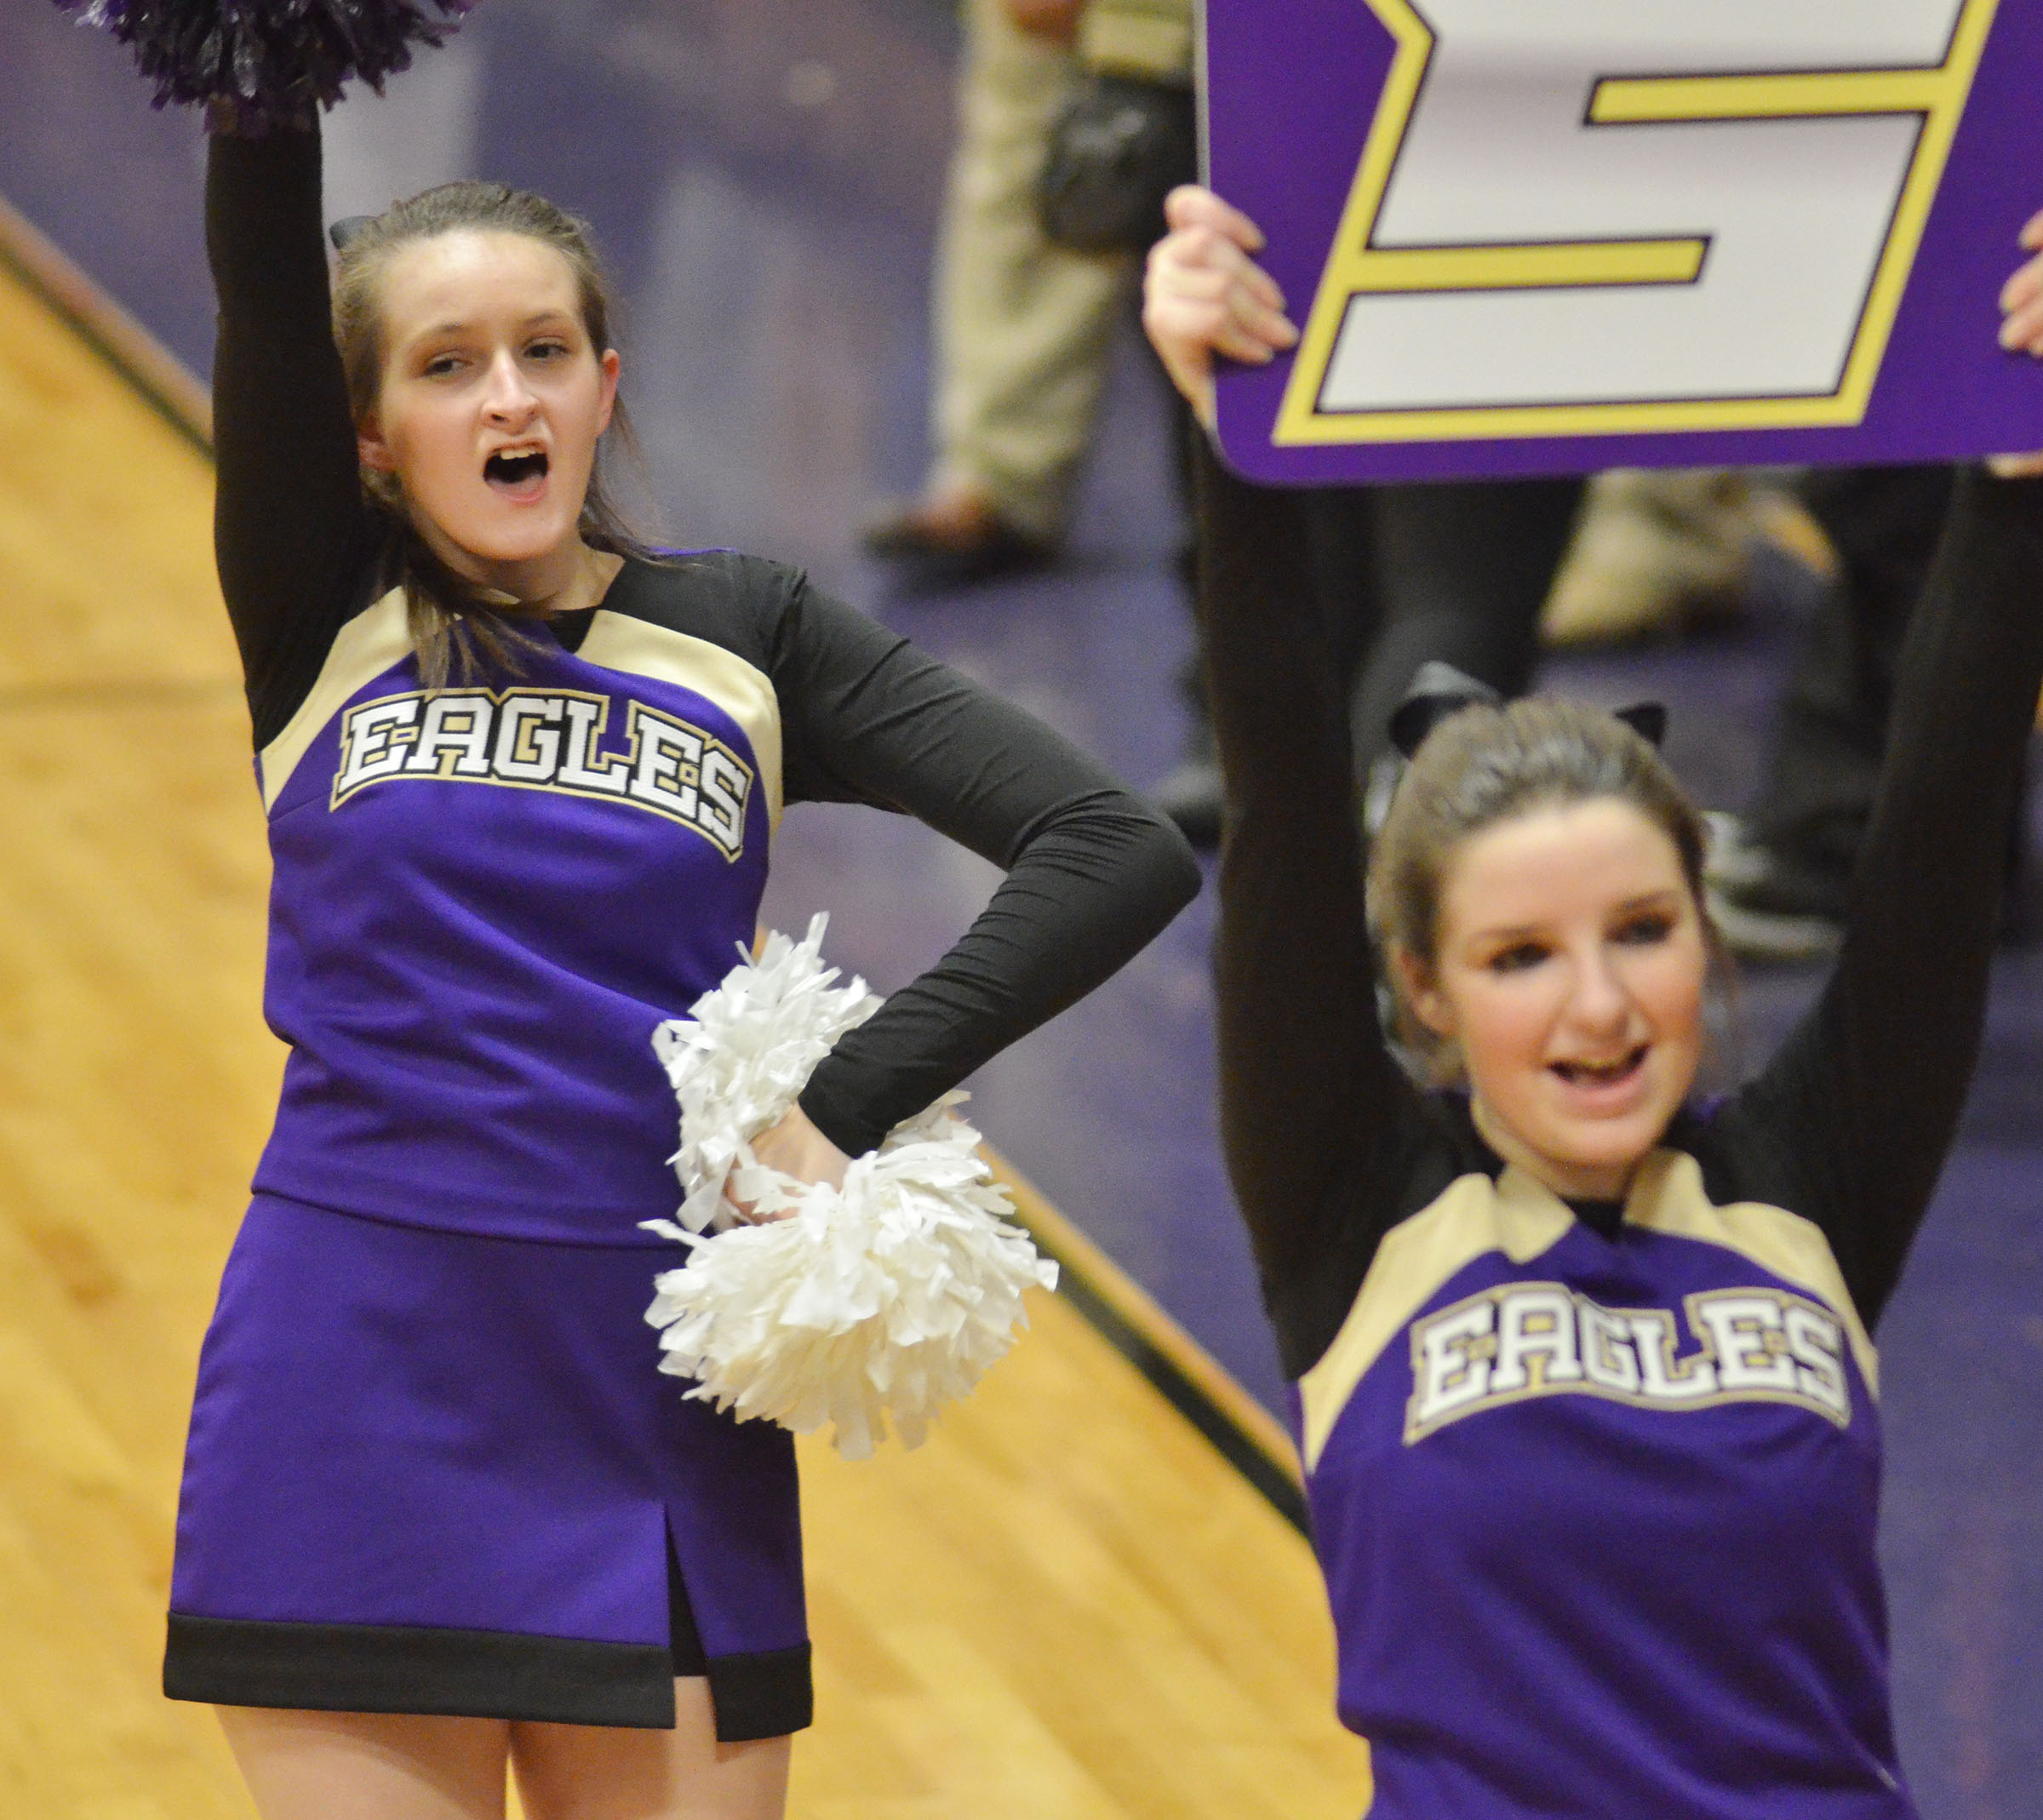 CHS junior Kimberly Harden, at left, and freshman Sydney Wilson cheer for the Eagles.